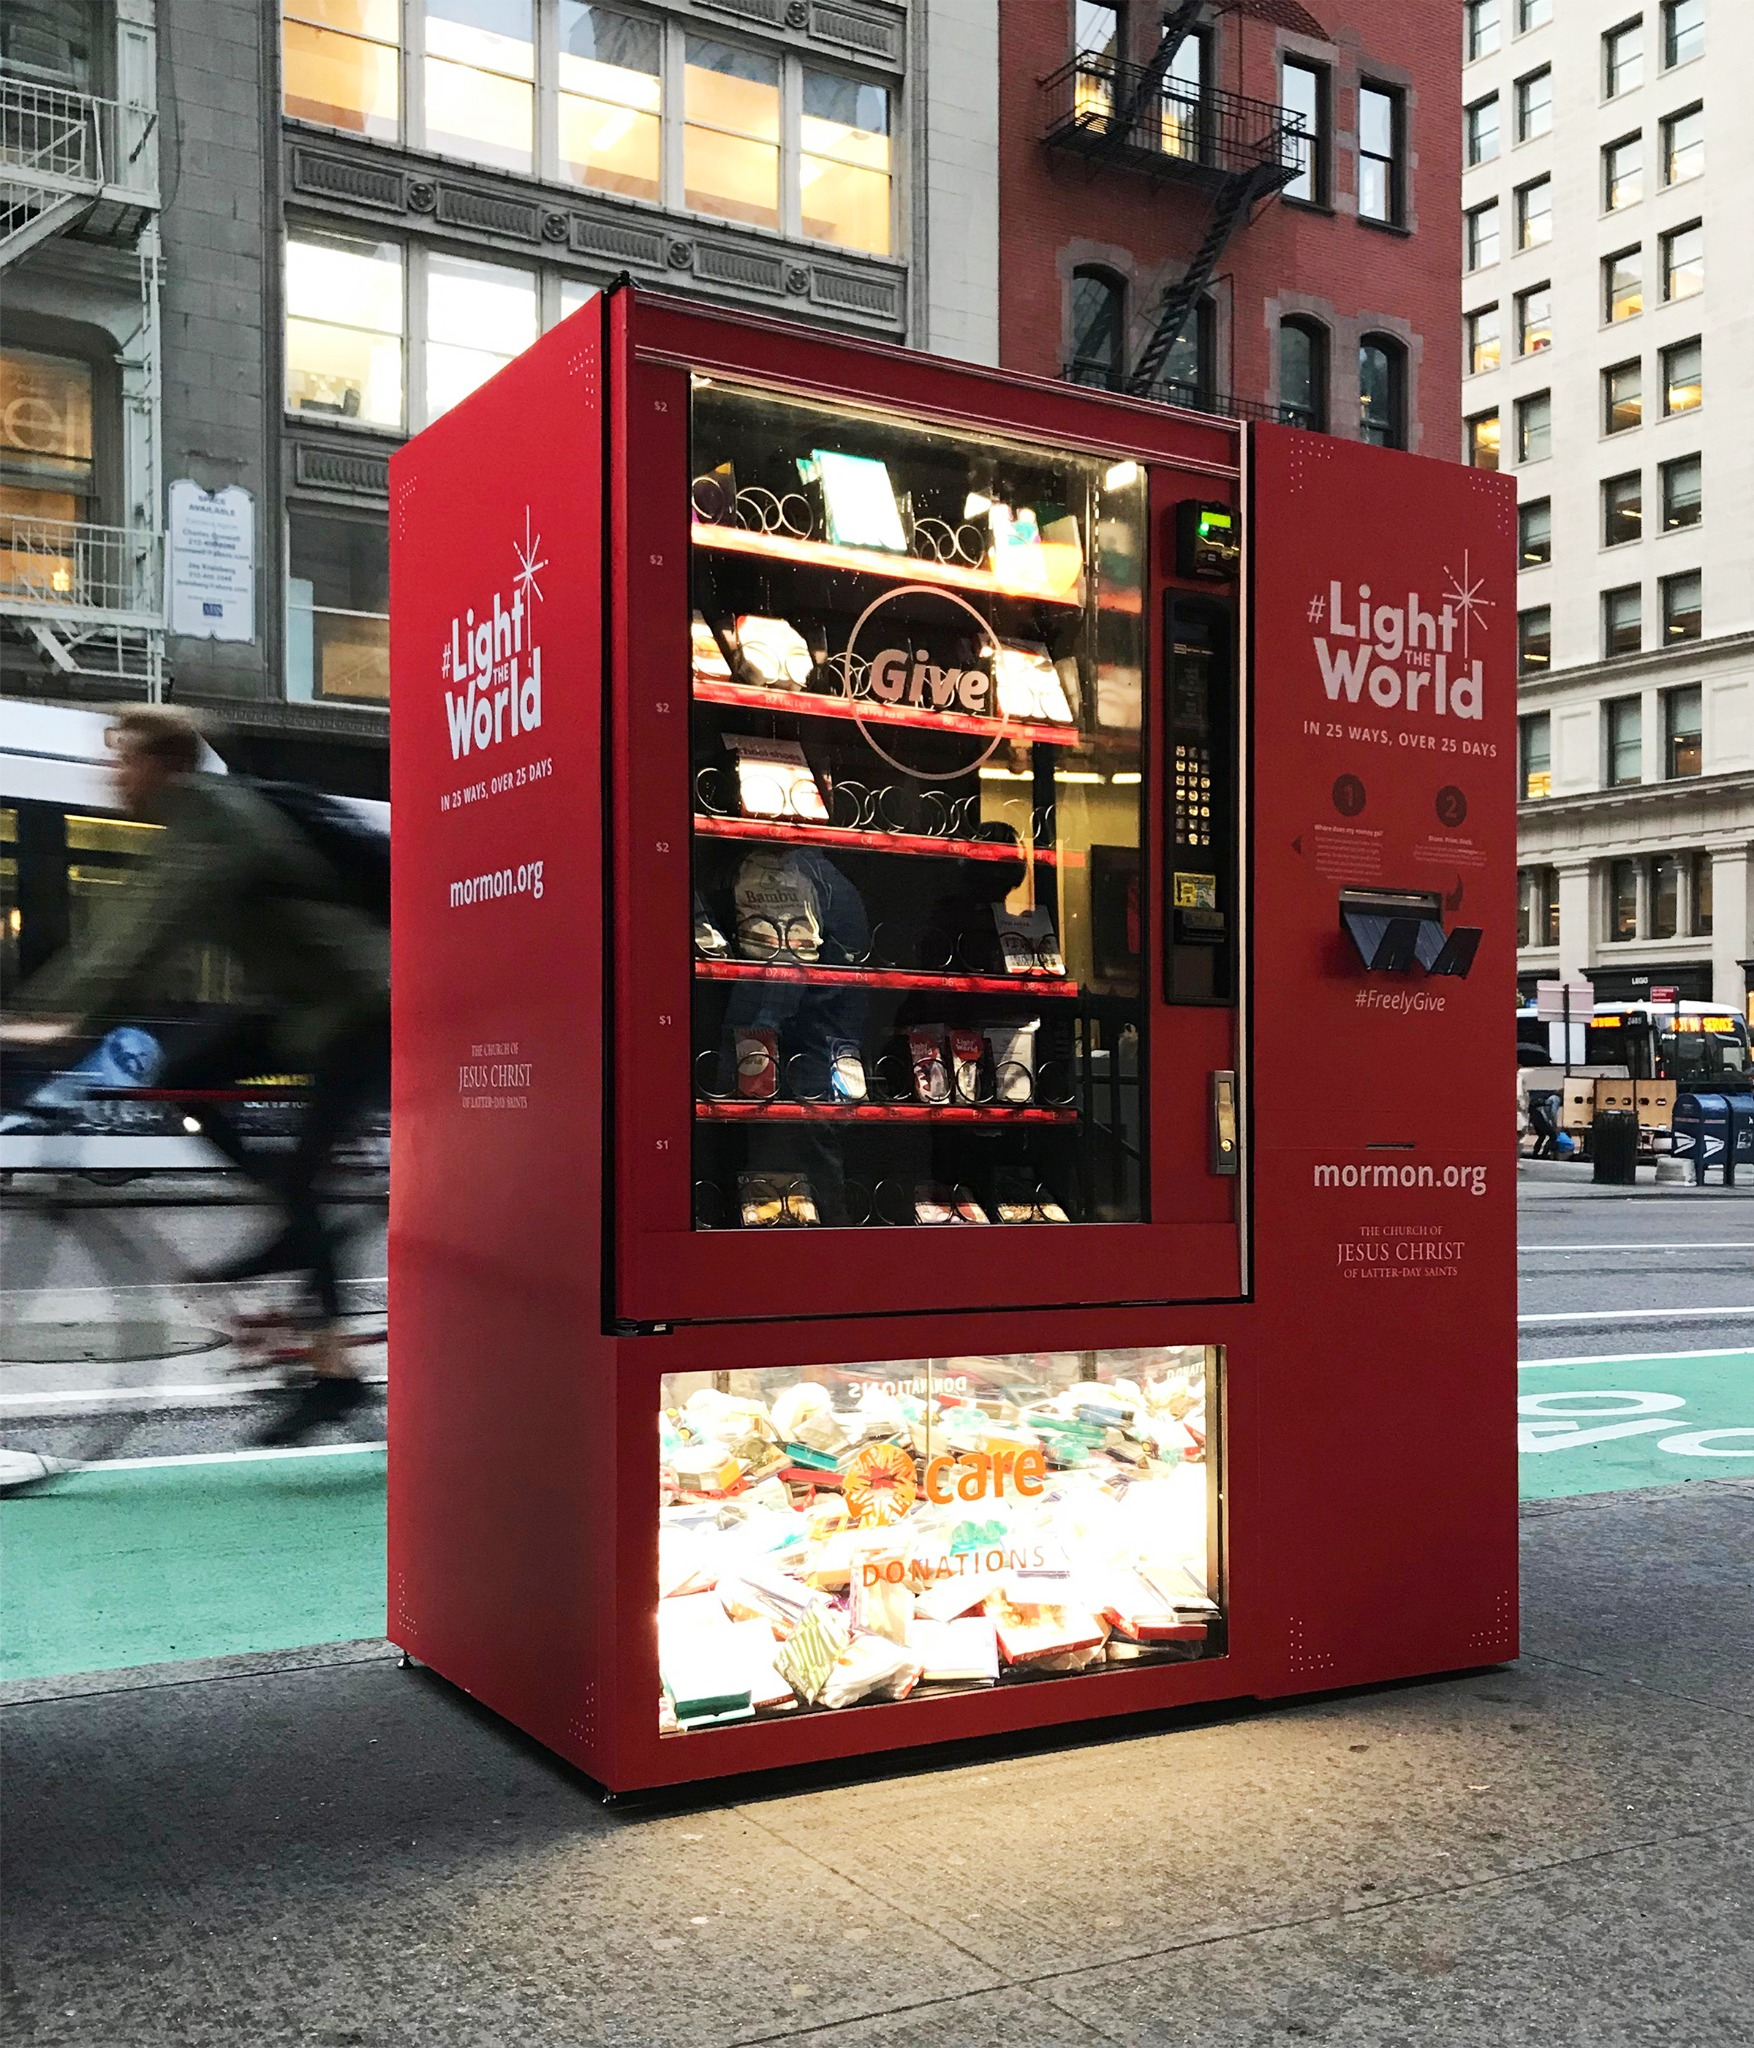 A Giving Machine is placed on a New York City street. The machine is a way to donate to those in need during the Christmas season.